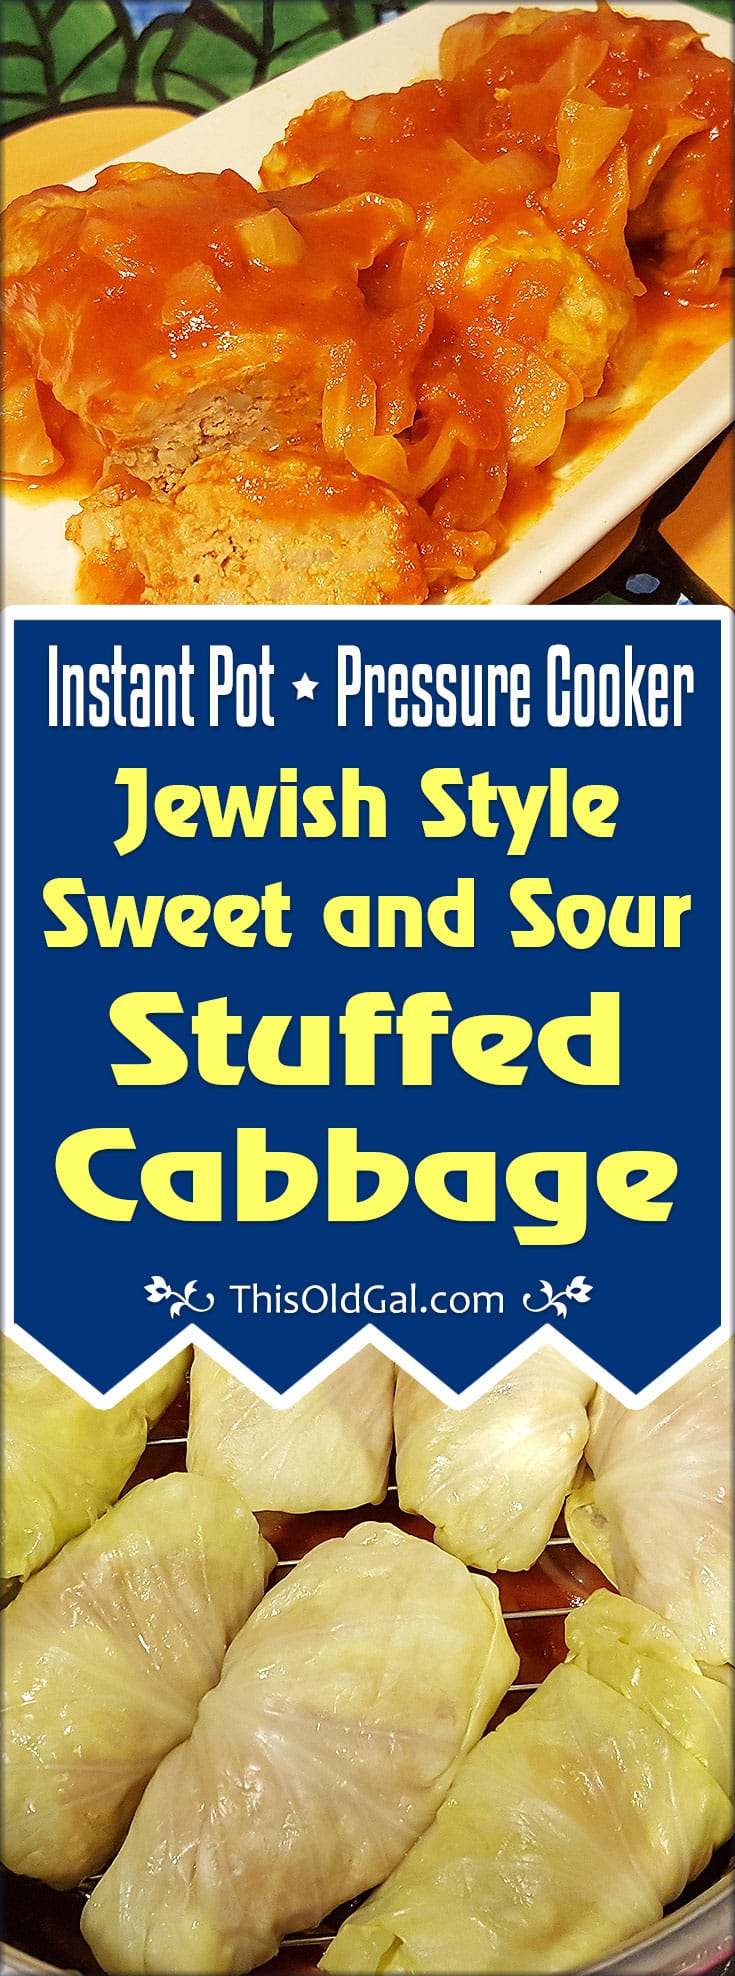 Pressure Cooker Jewish Style Sweet and Sour Stuffed Cabbage